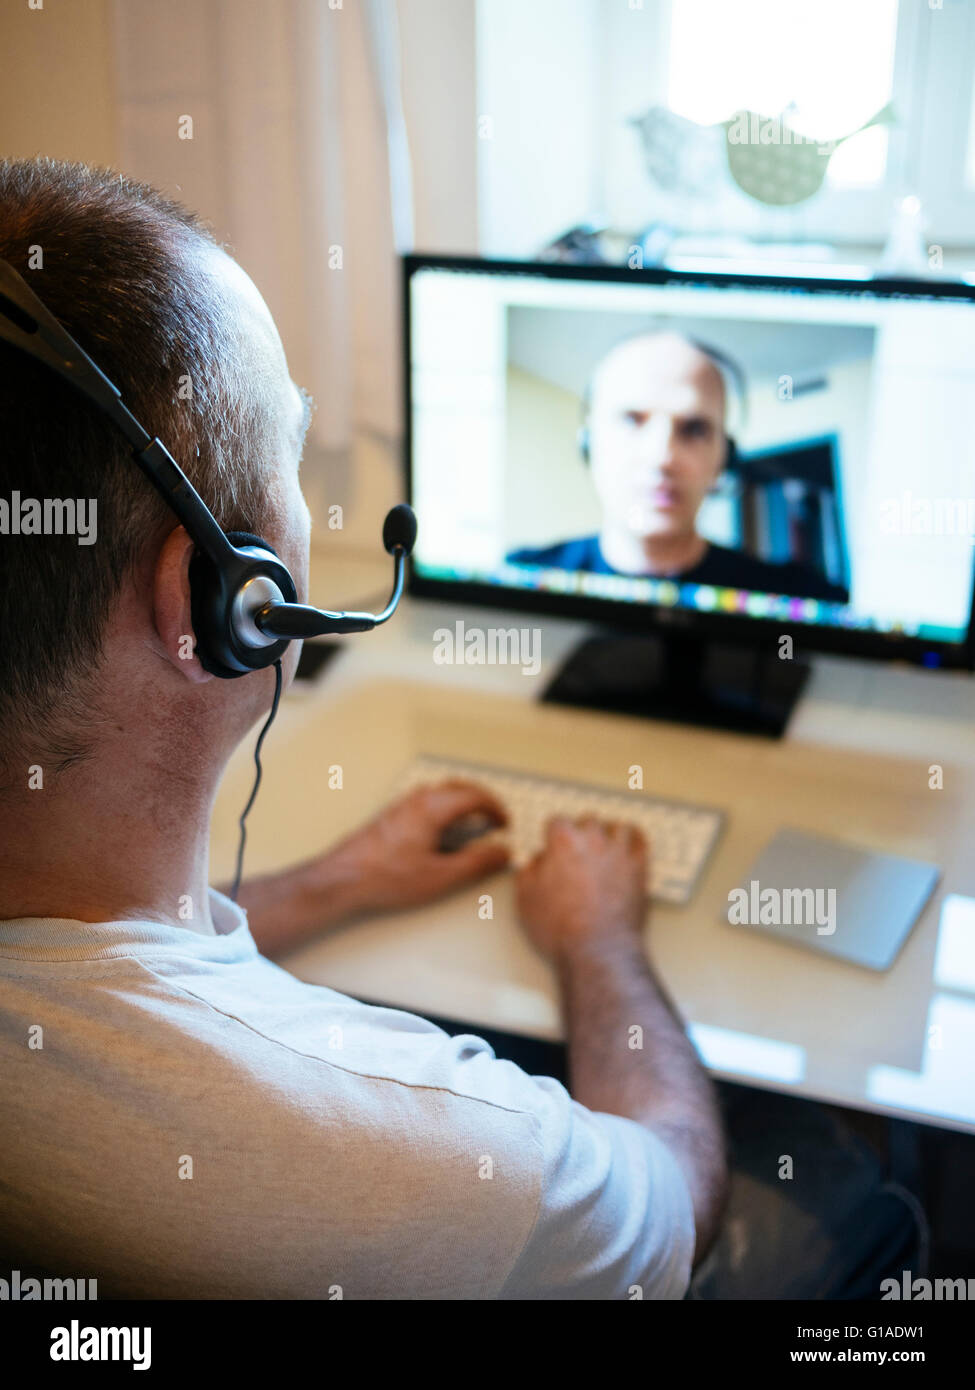 Teleworker in home office having a video conference with a colleague. - Stock Image